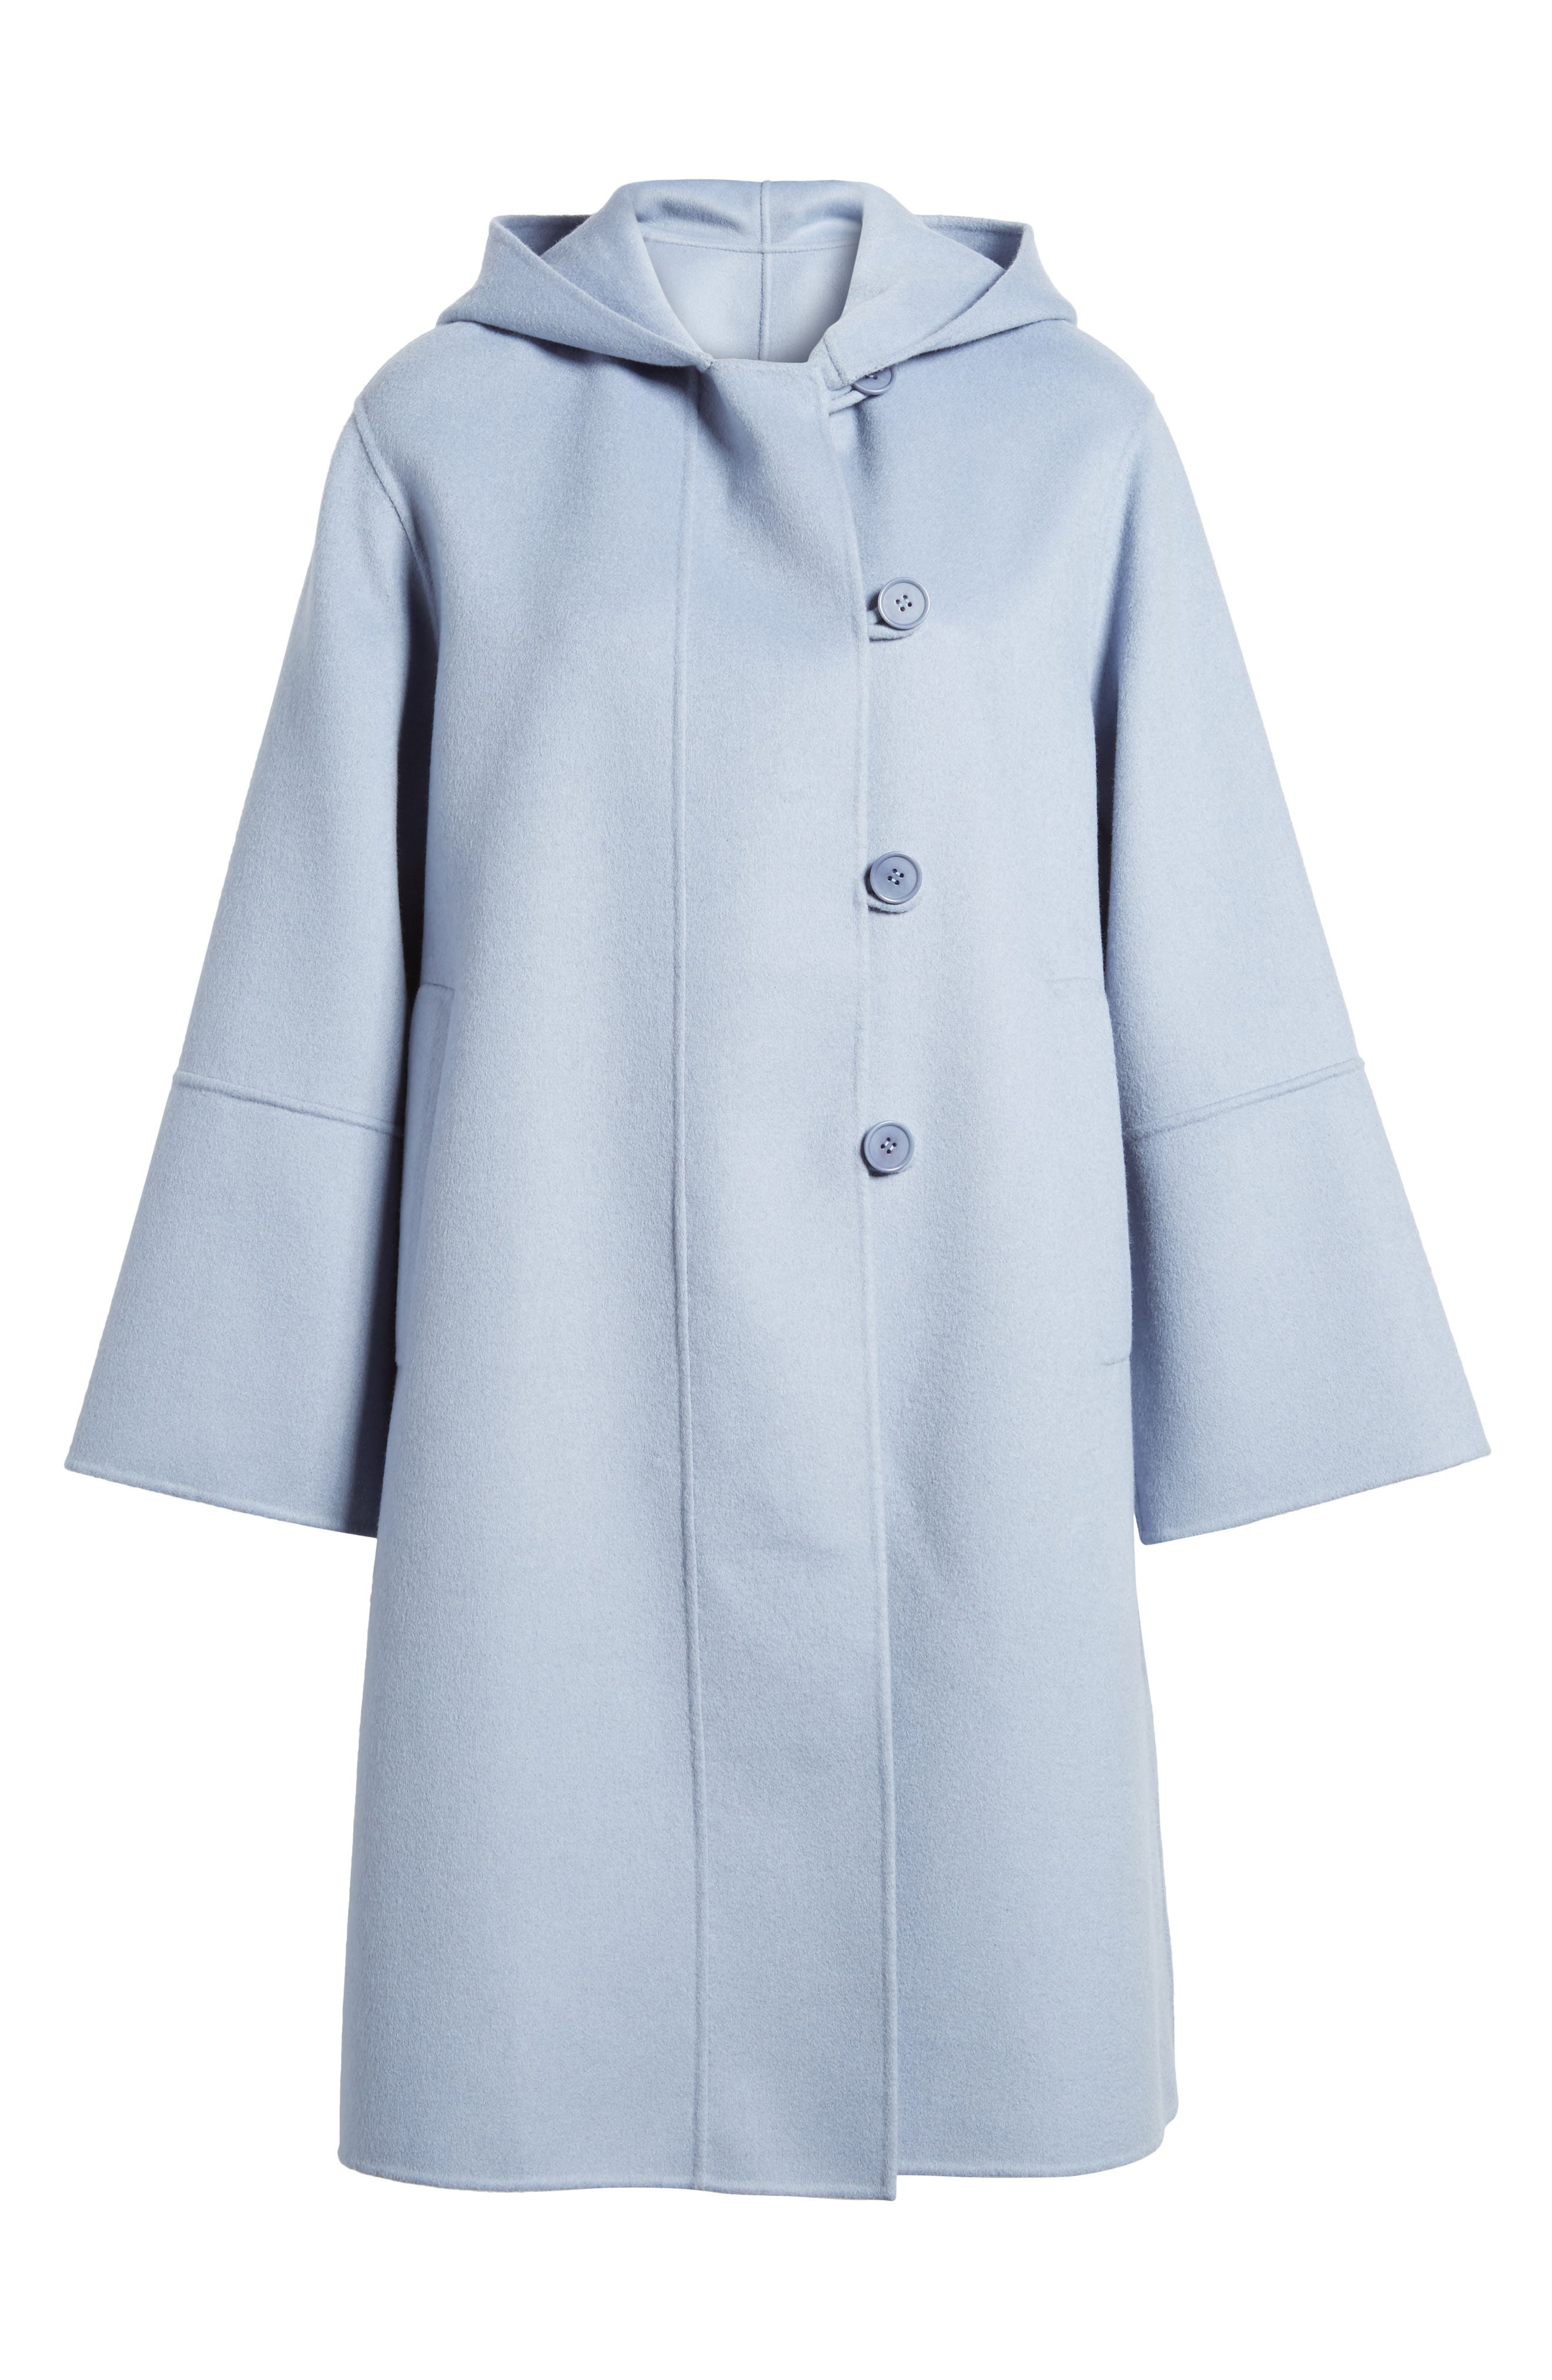 Hooded Wool & Cashmere Coat,                             Alternate thumbnail 5, color,                             450